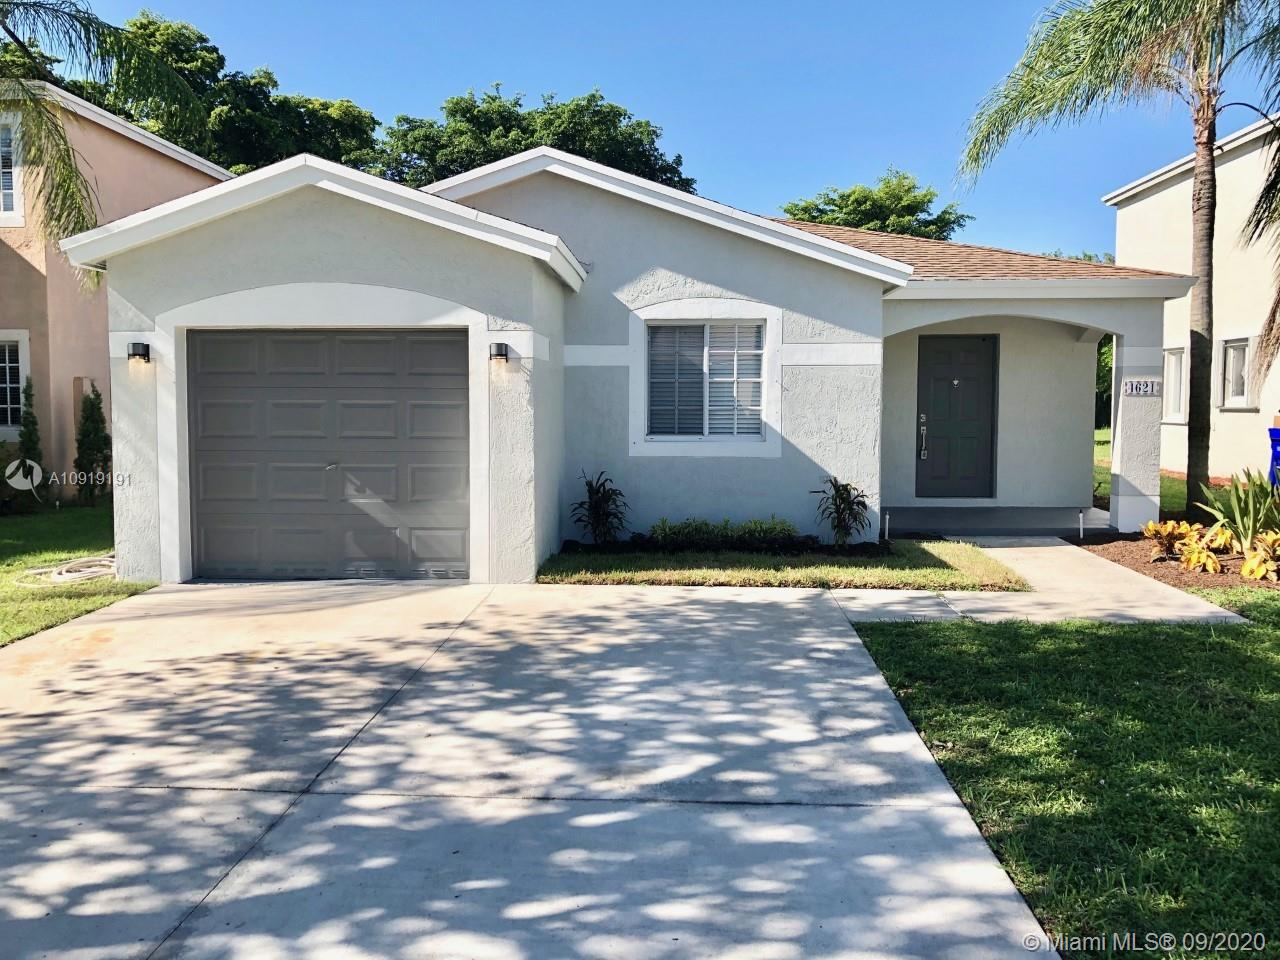 """Magnificent Fully updated 3/2 ranch style home in the highly desired Waterways community. No Expense was spared...New 24"""" porcelain tile throughout. Water proof flooring in all rooms, Brand NEW AC, Beautifully designed kitchen w/ New Stainless steel appliances, New LED lighting & fixtures throughout. Fully updated bathrooms with new cabinetry hardware and quartz tops. New ceiling fans and hardware throughout home. Tastefully painted inside and outl....be the first to enjoy this turn key home!"""